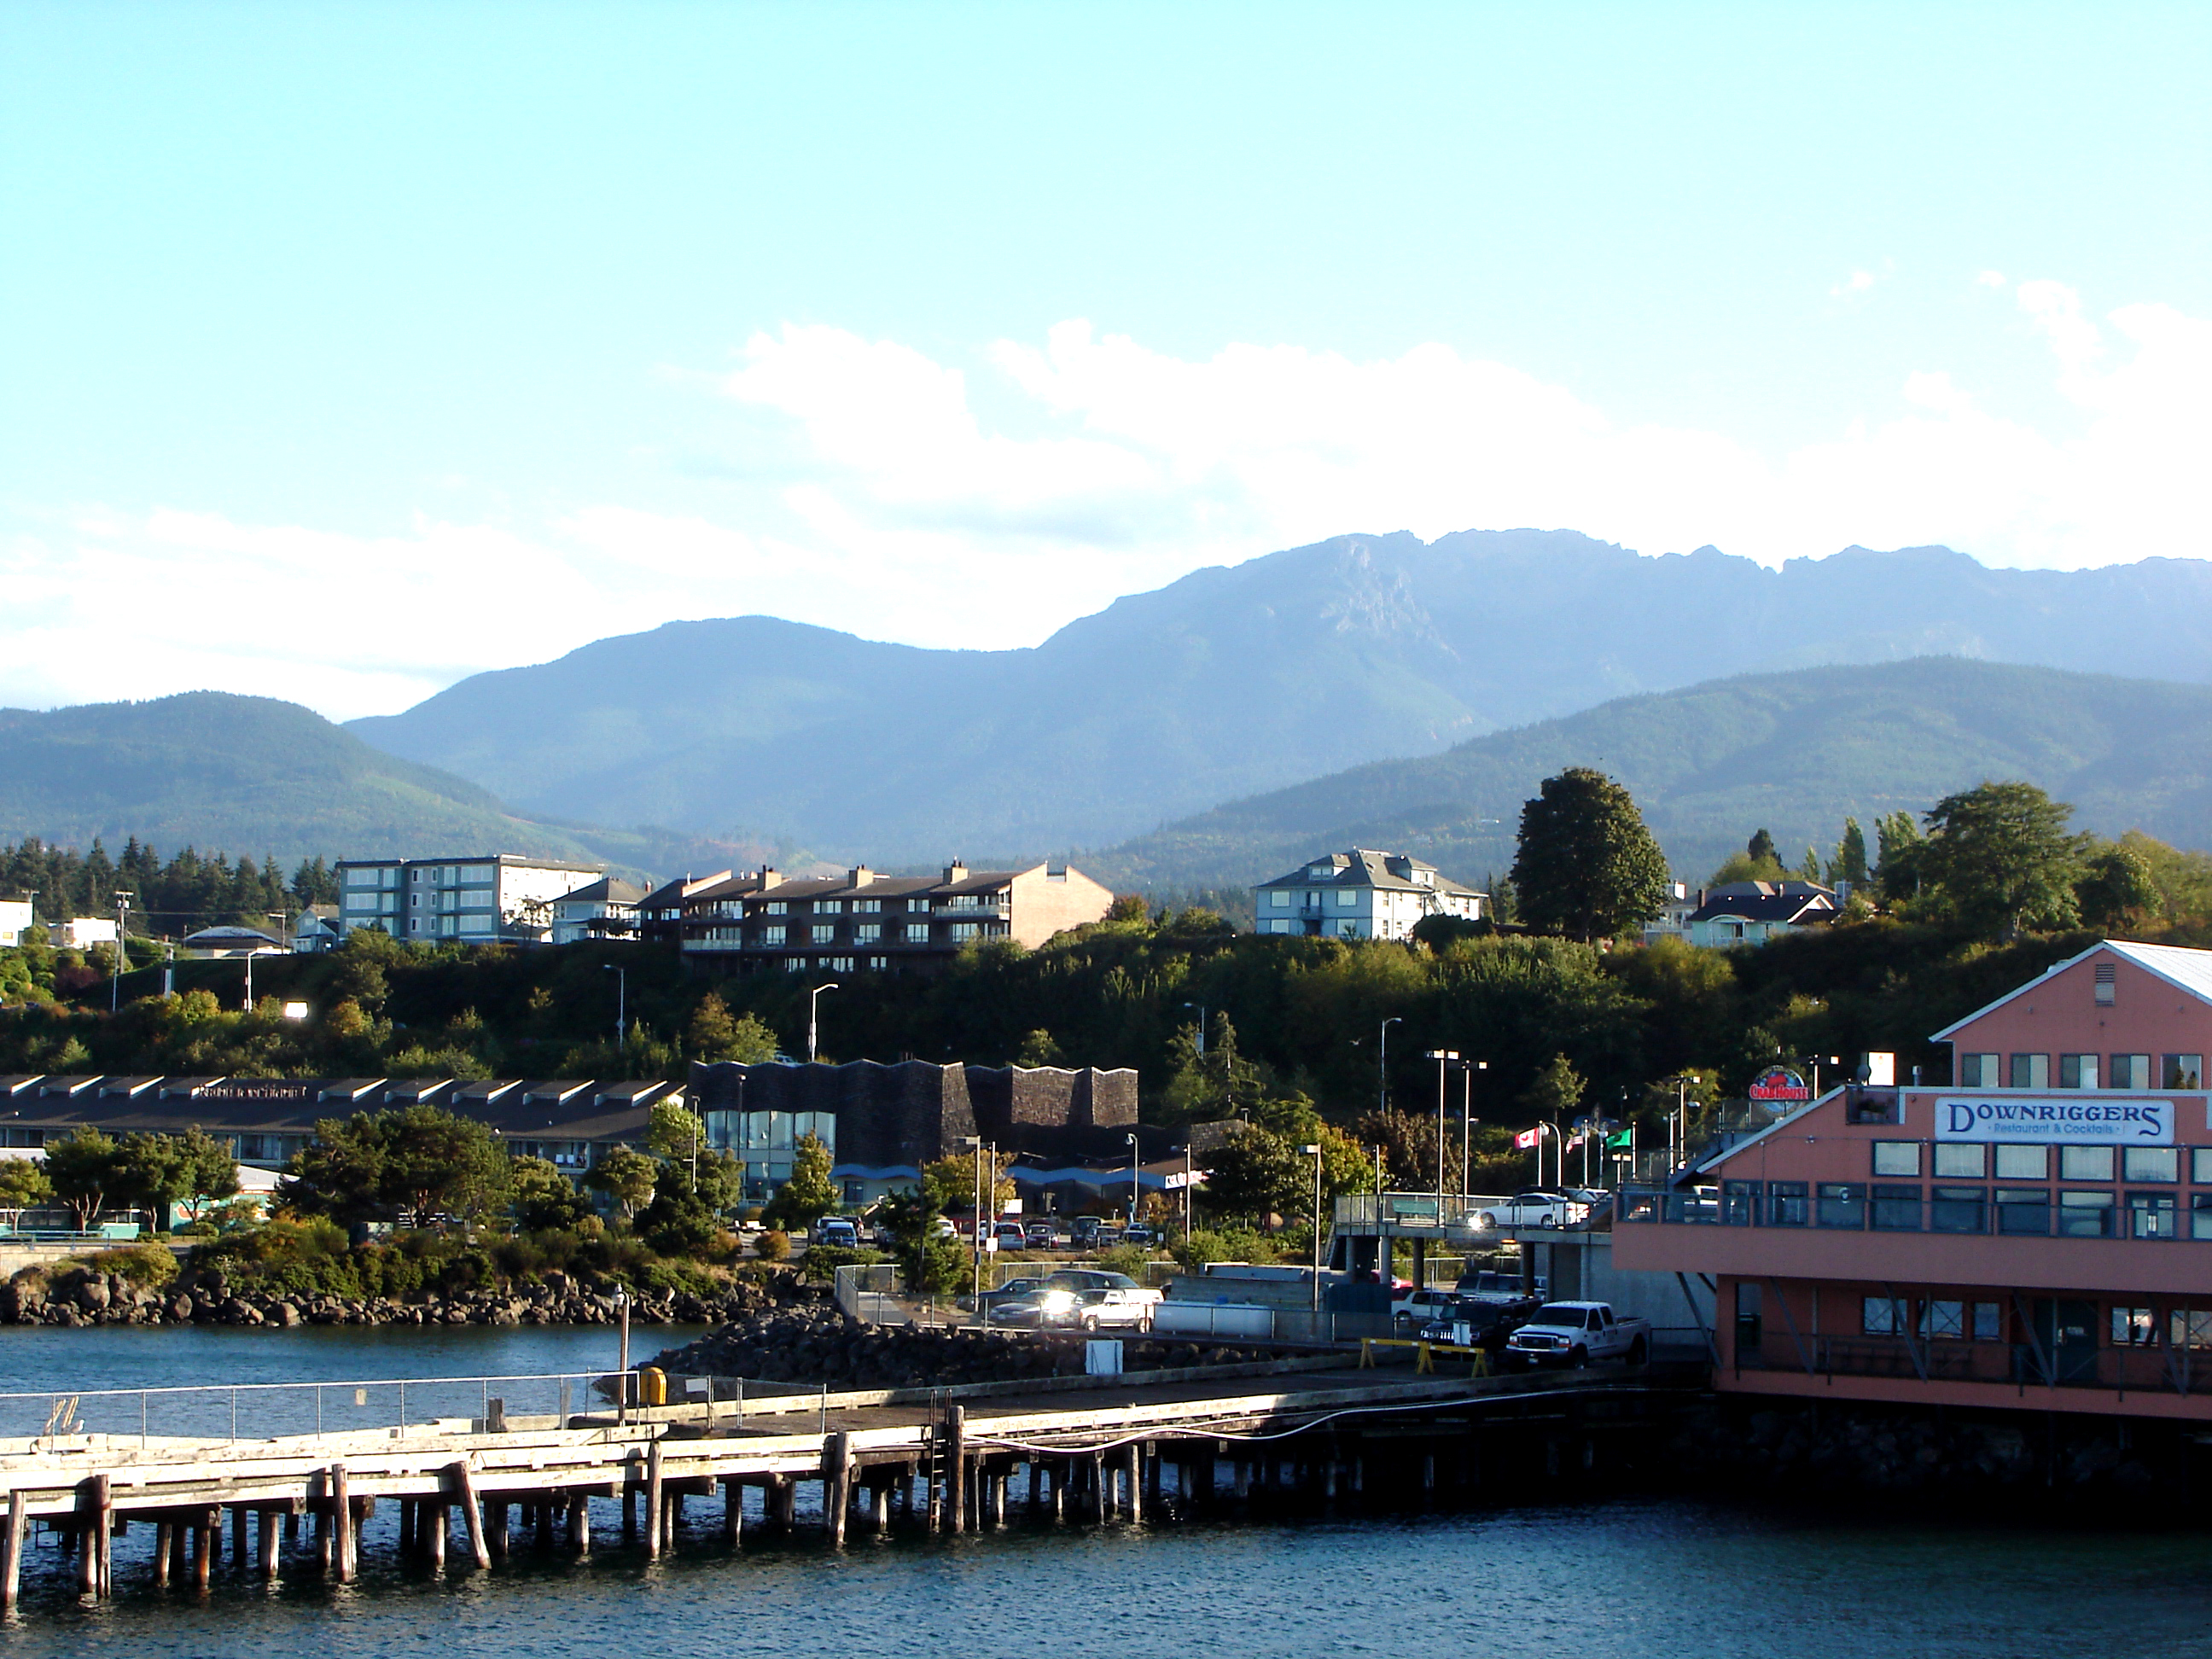 Port Angeles harbor and the Olympic Mountains